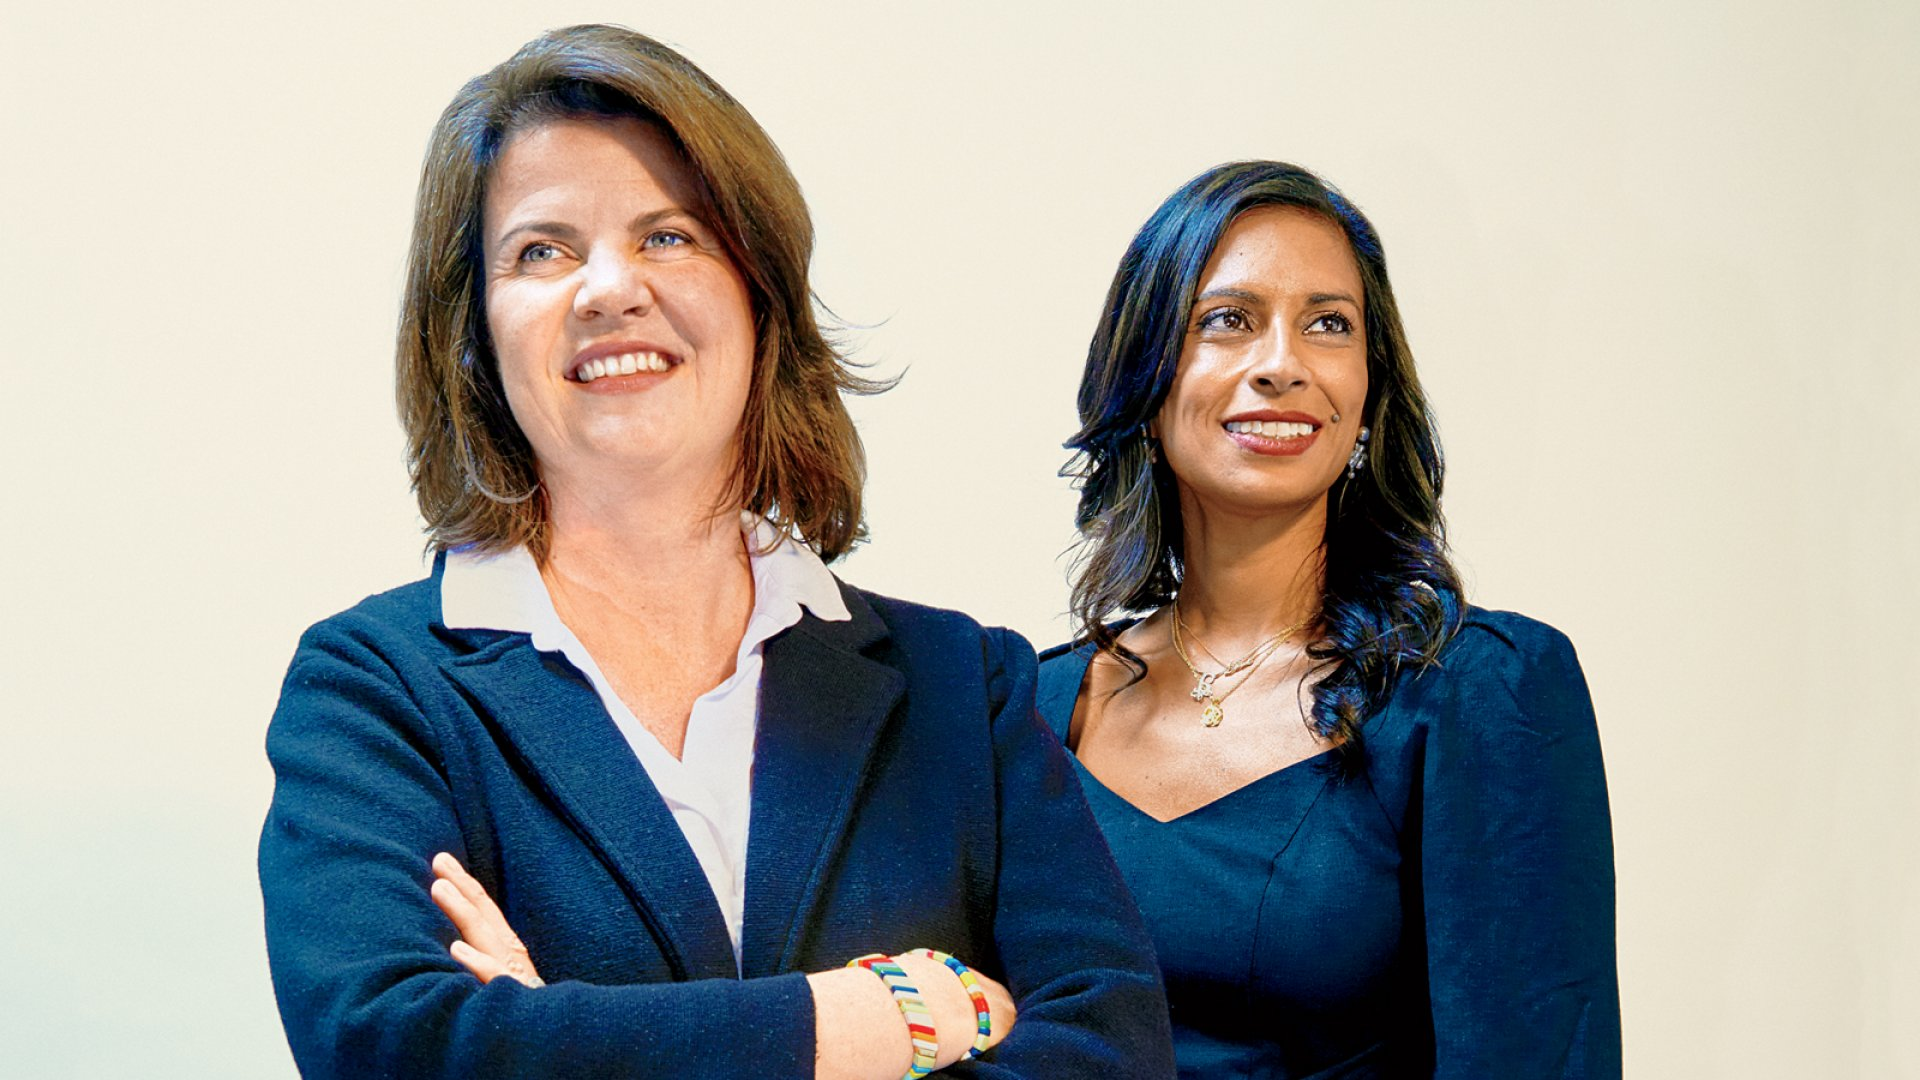 Rhian Horgan, left, founder and CEO of Kindur, and Anu Duggal, founder and CEO of Female Founders Fund.